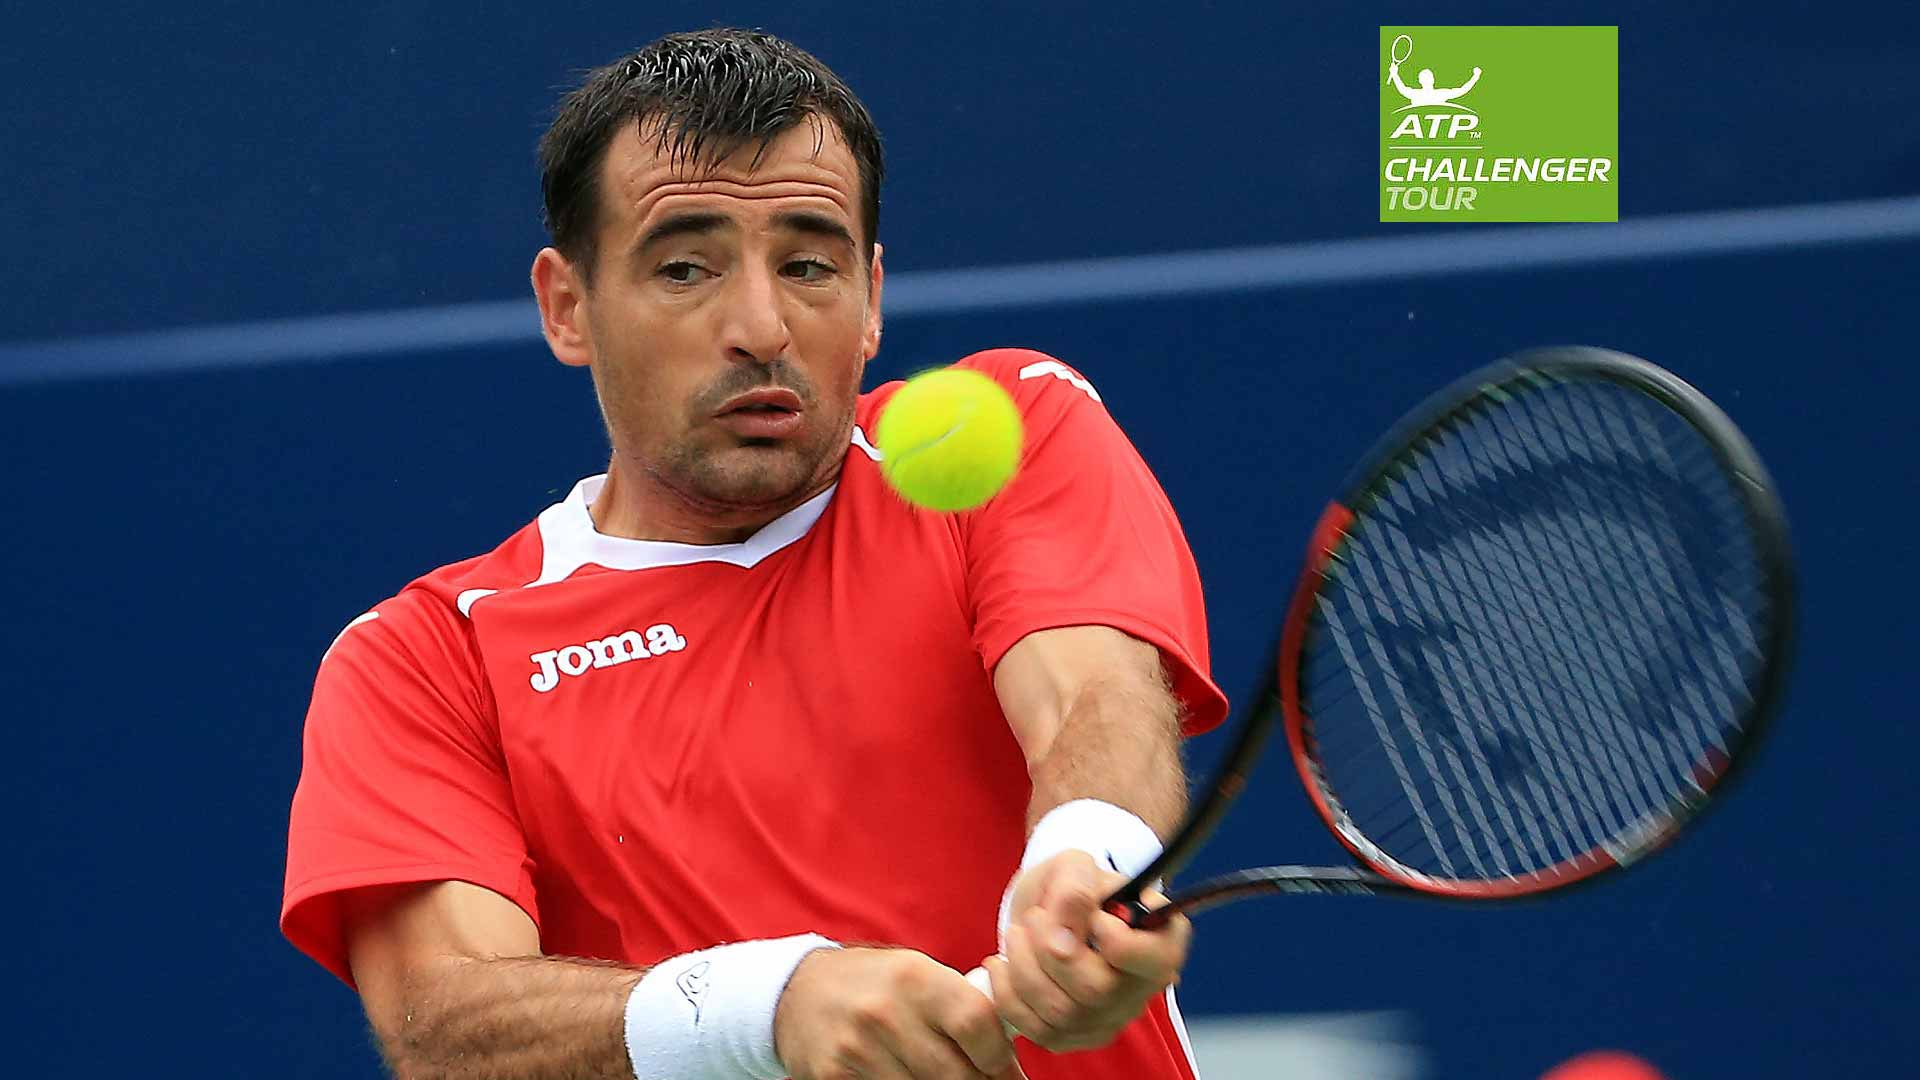 Ivan Dodig is ready for a big singles run in Tashkent.